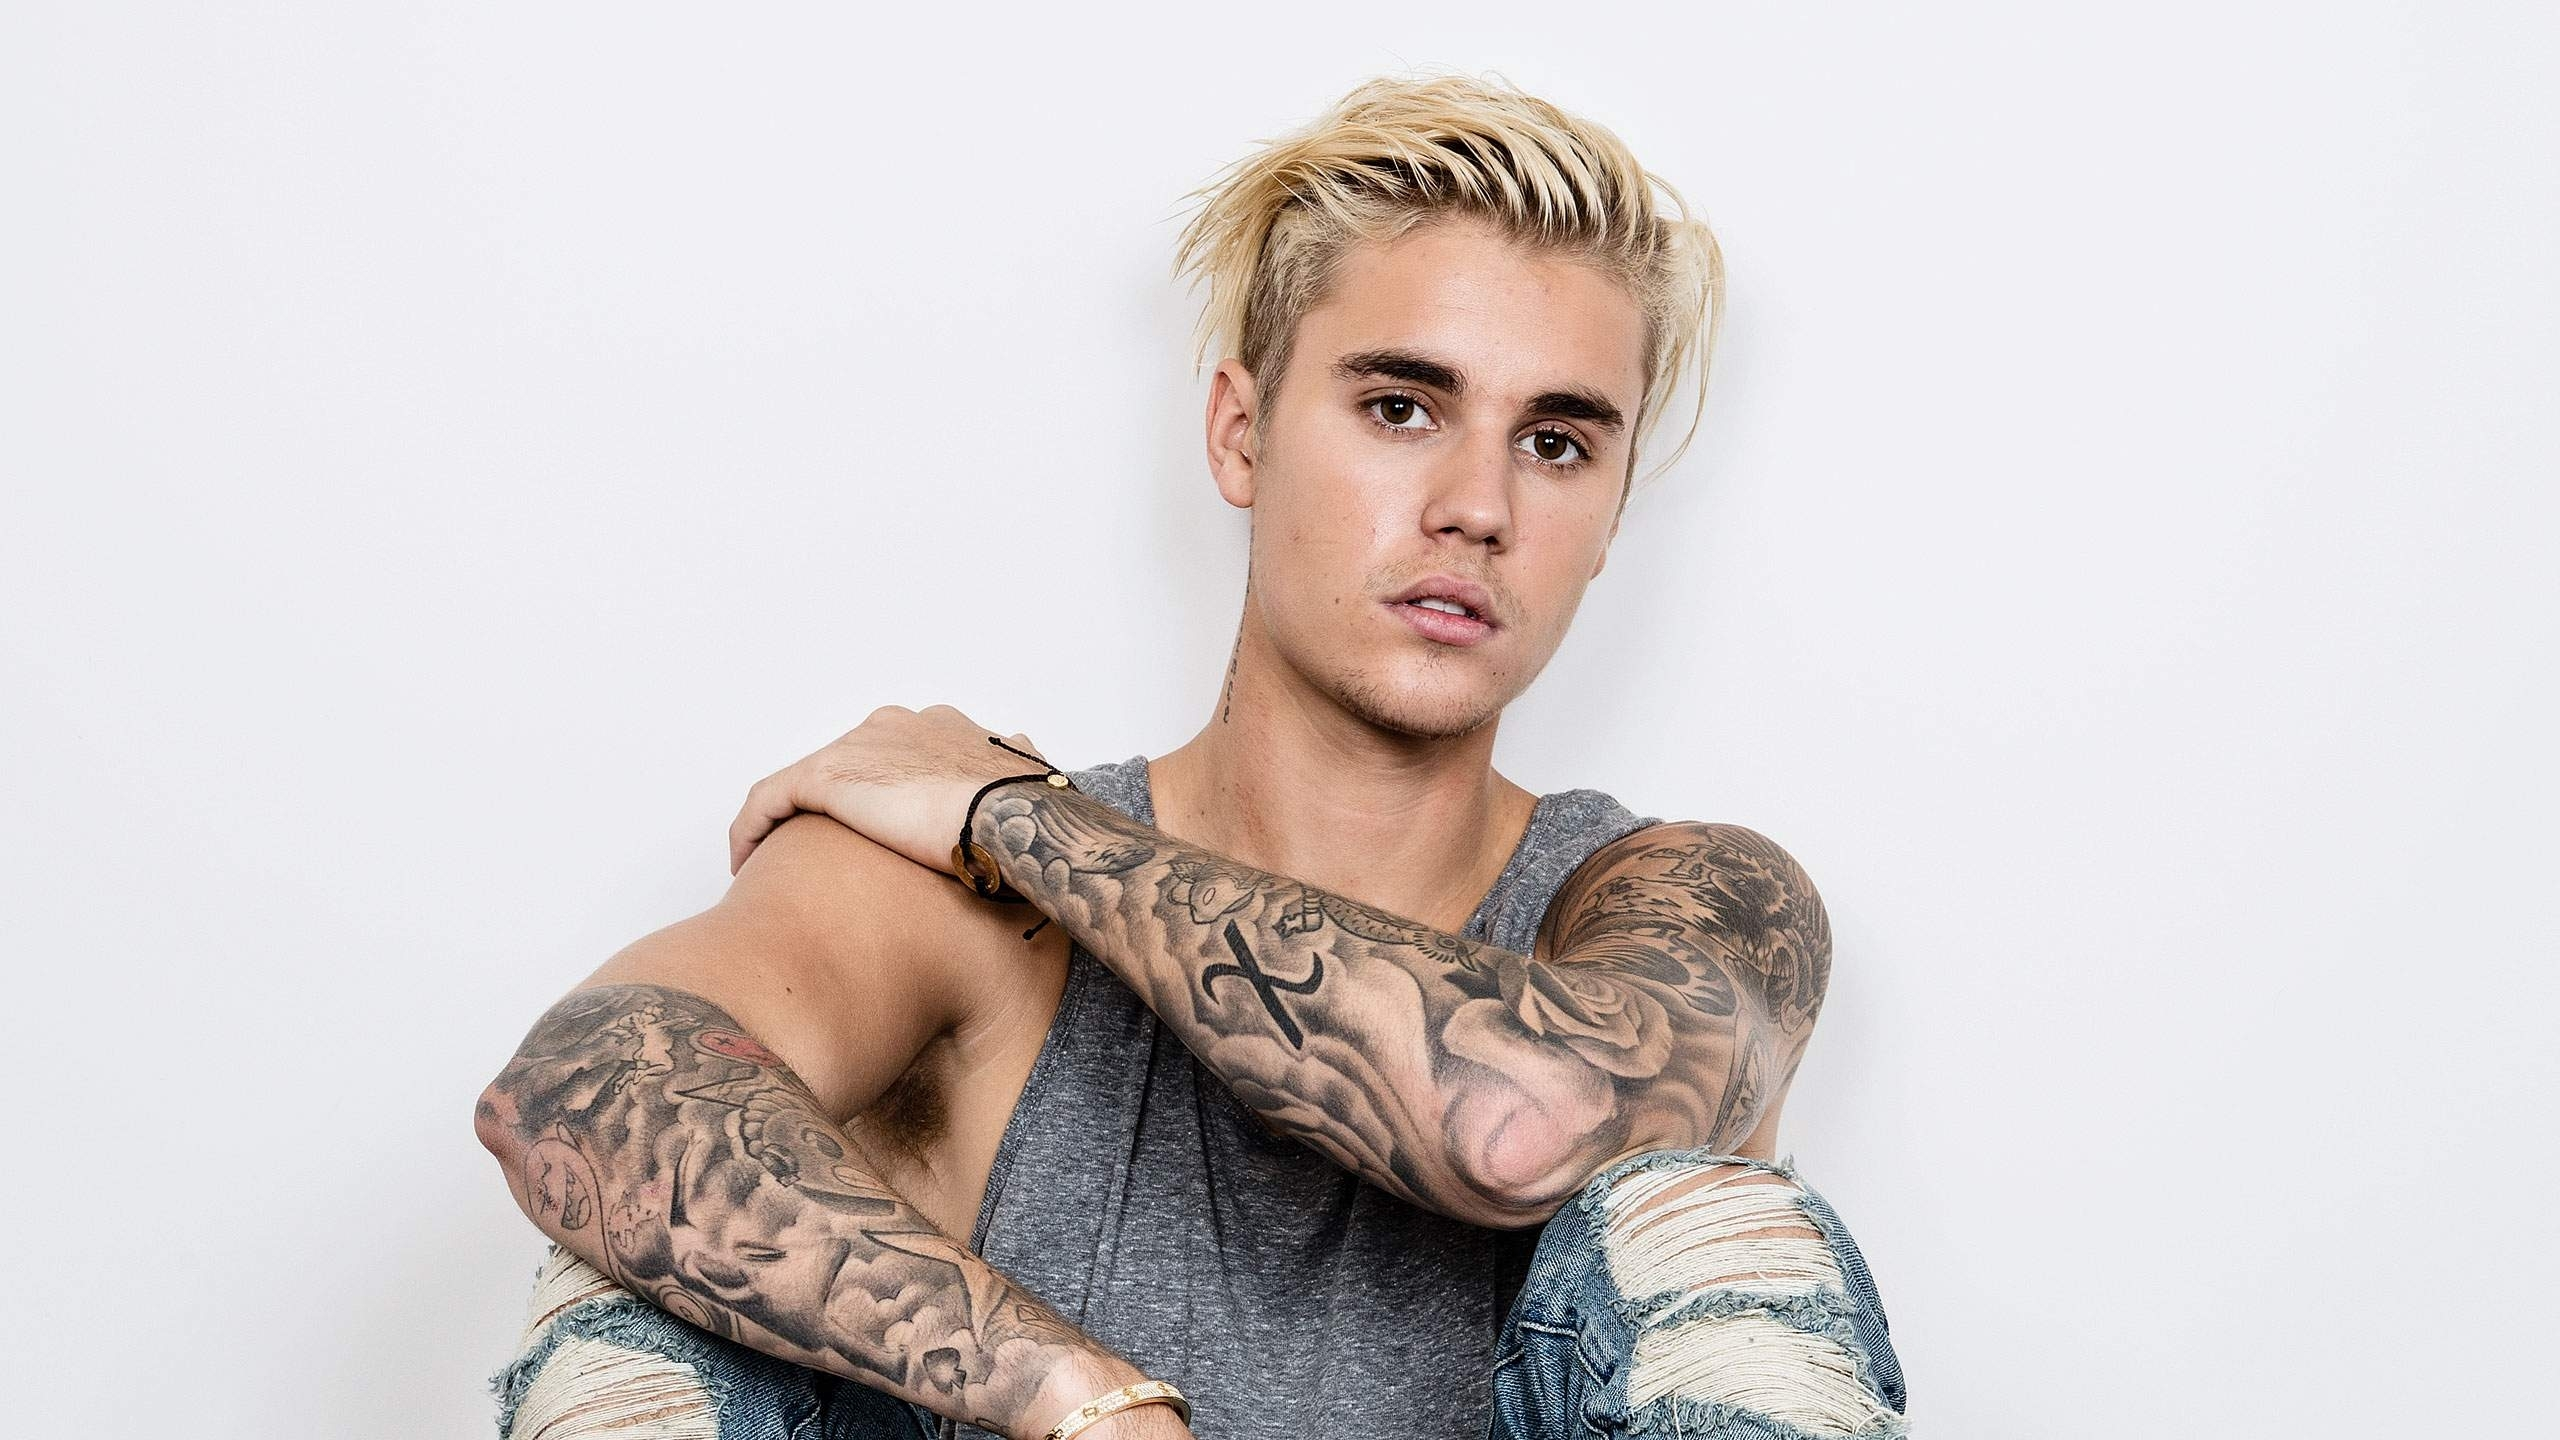 bieber – full hd photos for pc & mac, tablet, laptop, mobile